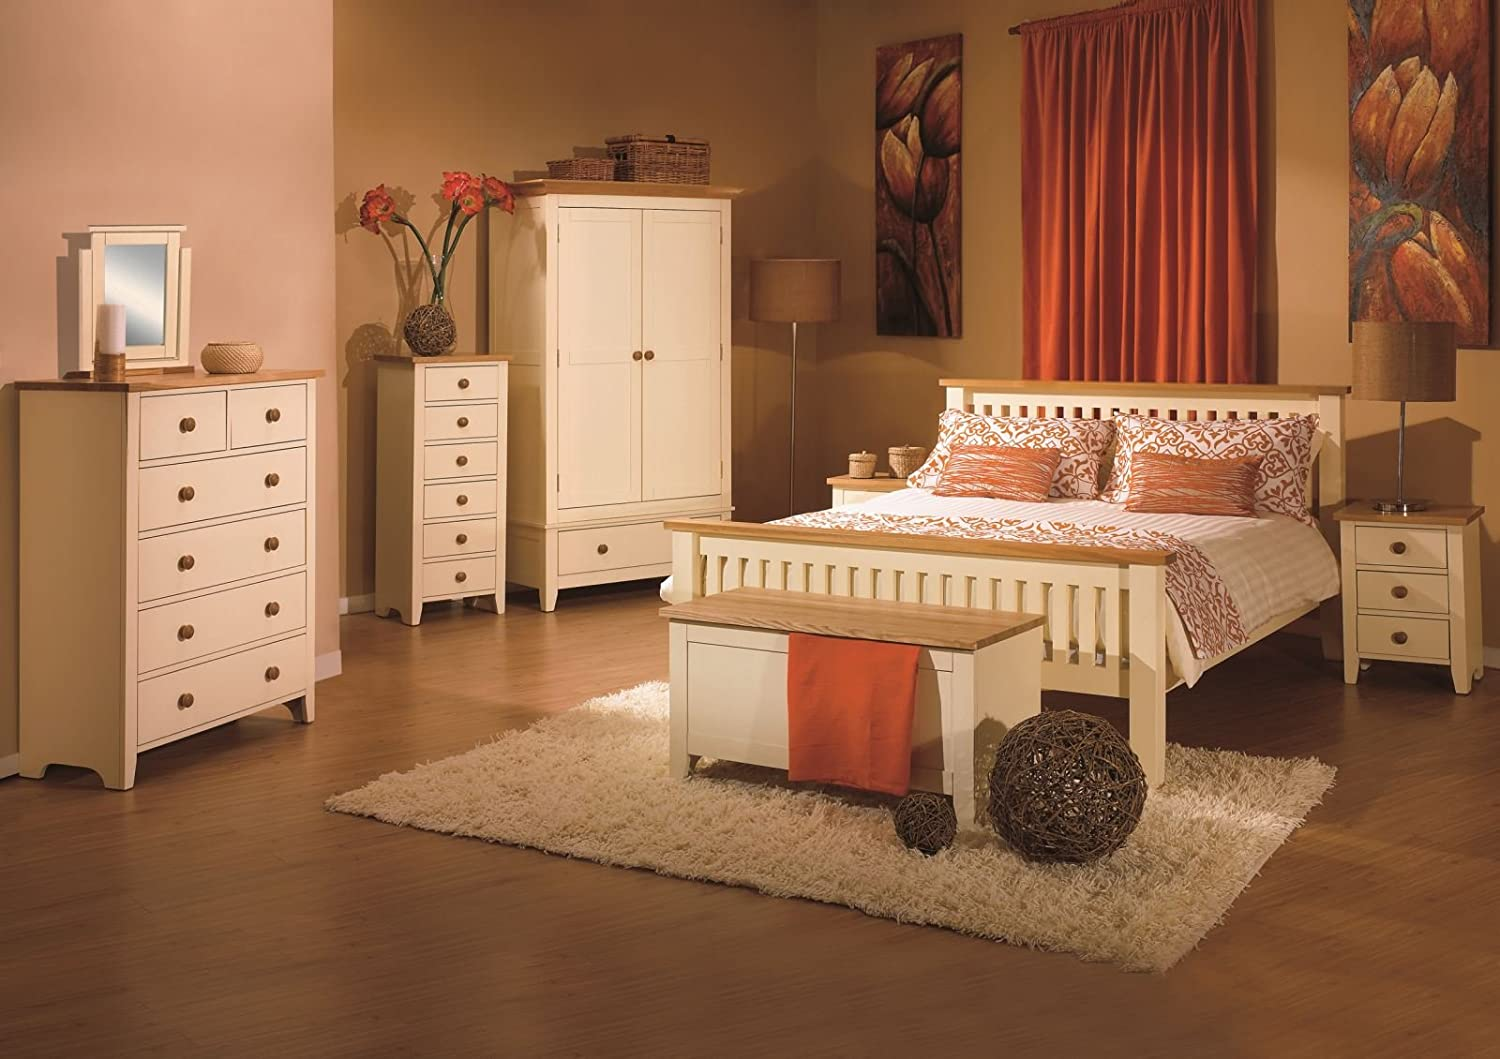 Admirable Camden Shaker Cream Wood Painted 4Ft 6 Double Bed Amazon Complete Home Design Collection Barbaintelli Responsecom